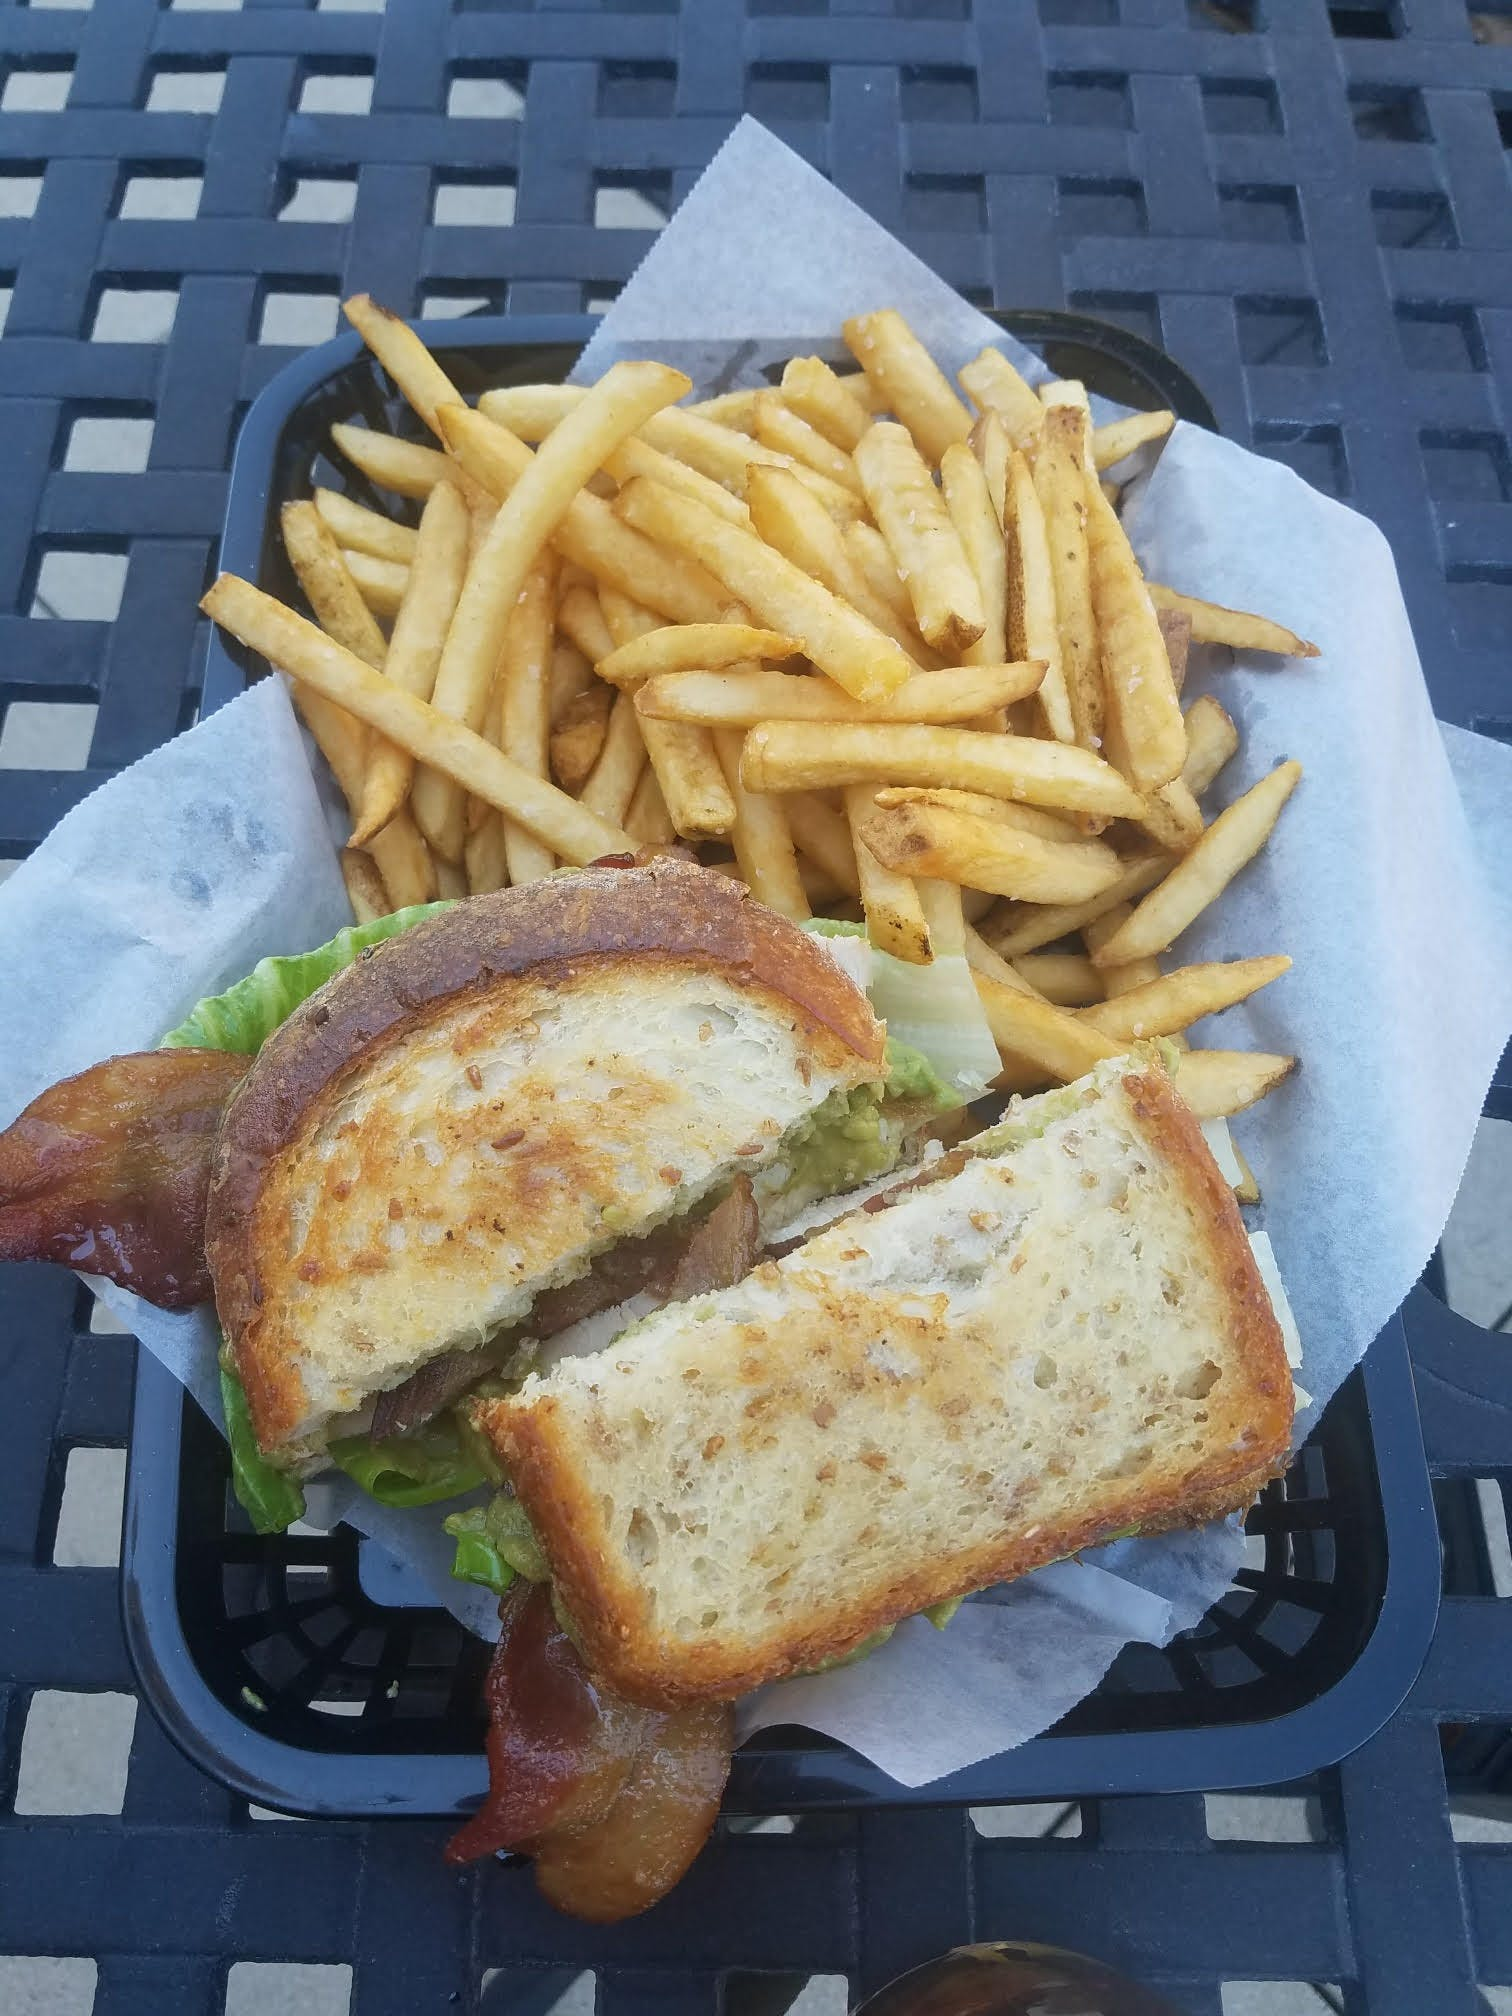 a sandwich sitting on top of a pile of fries